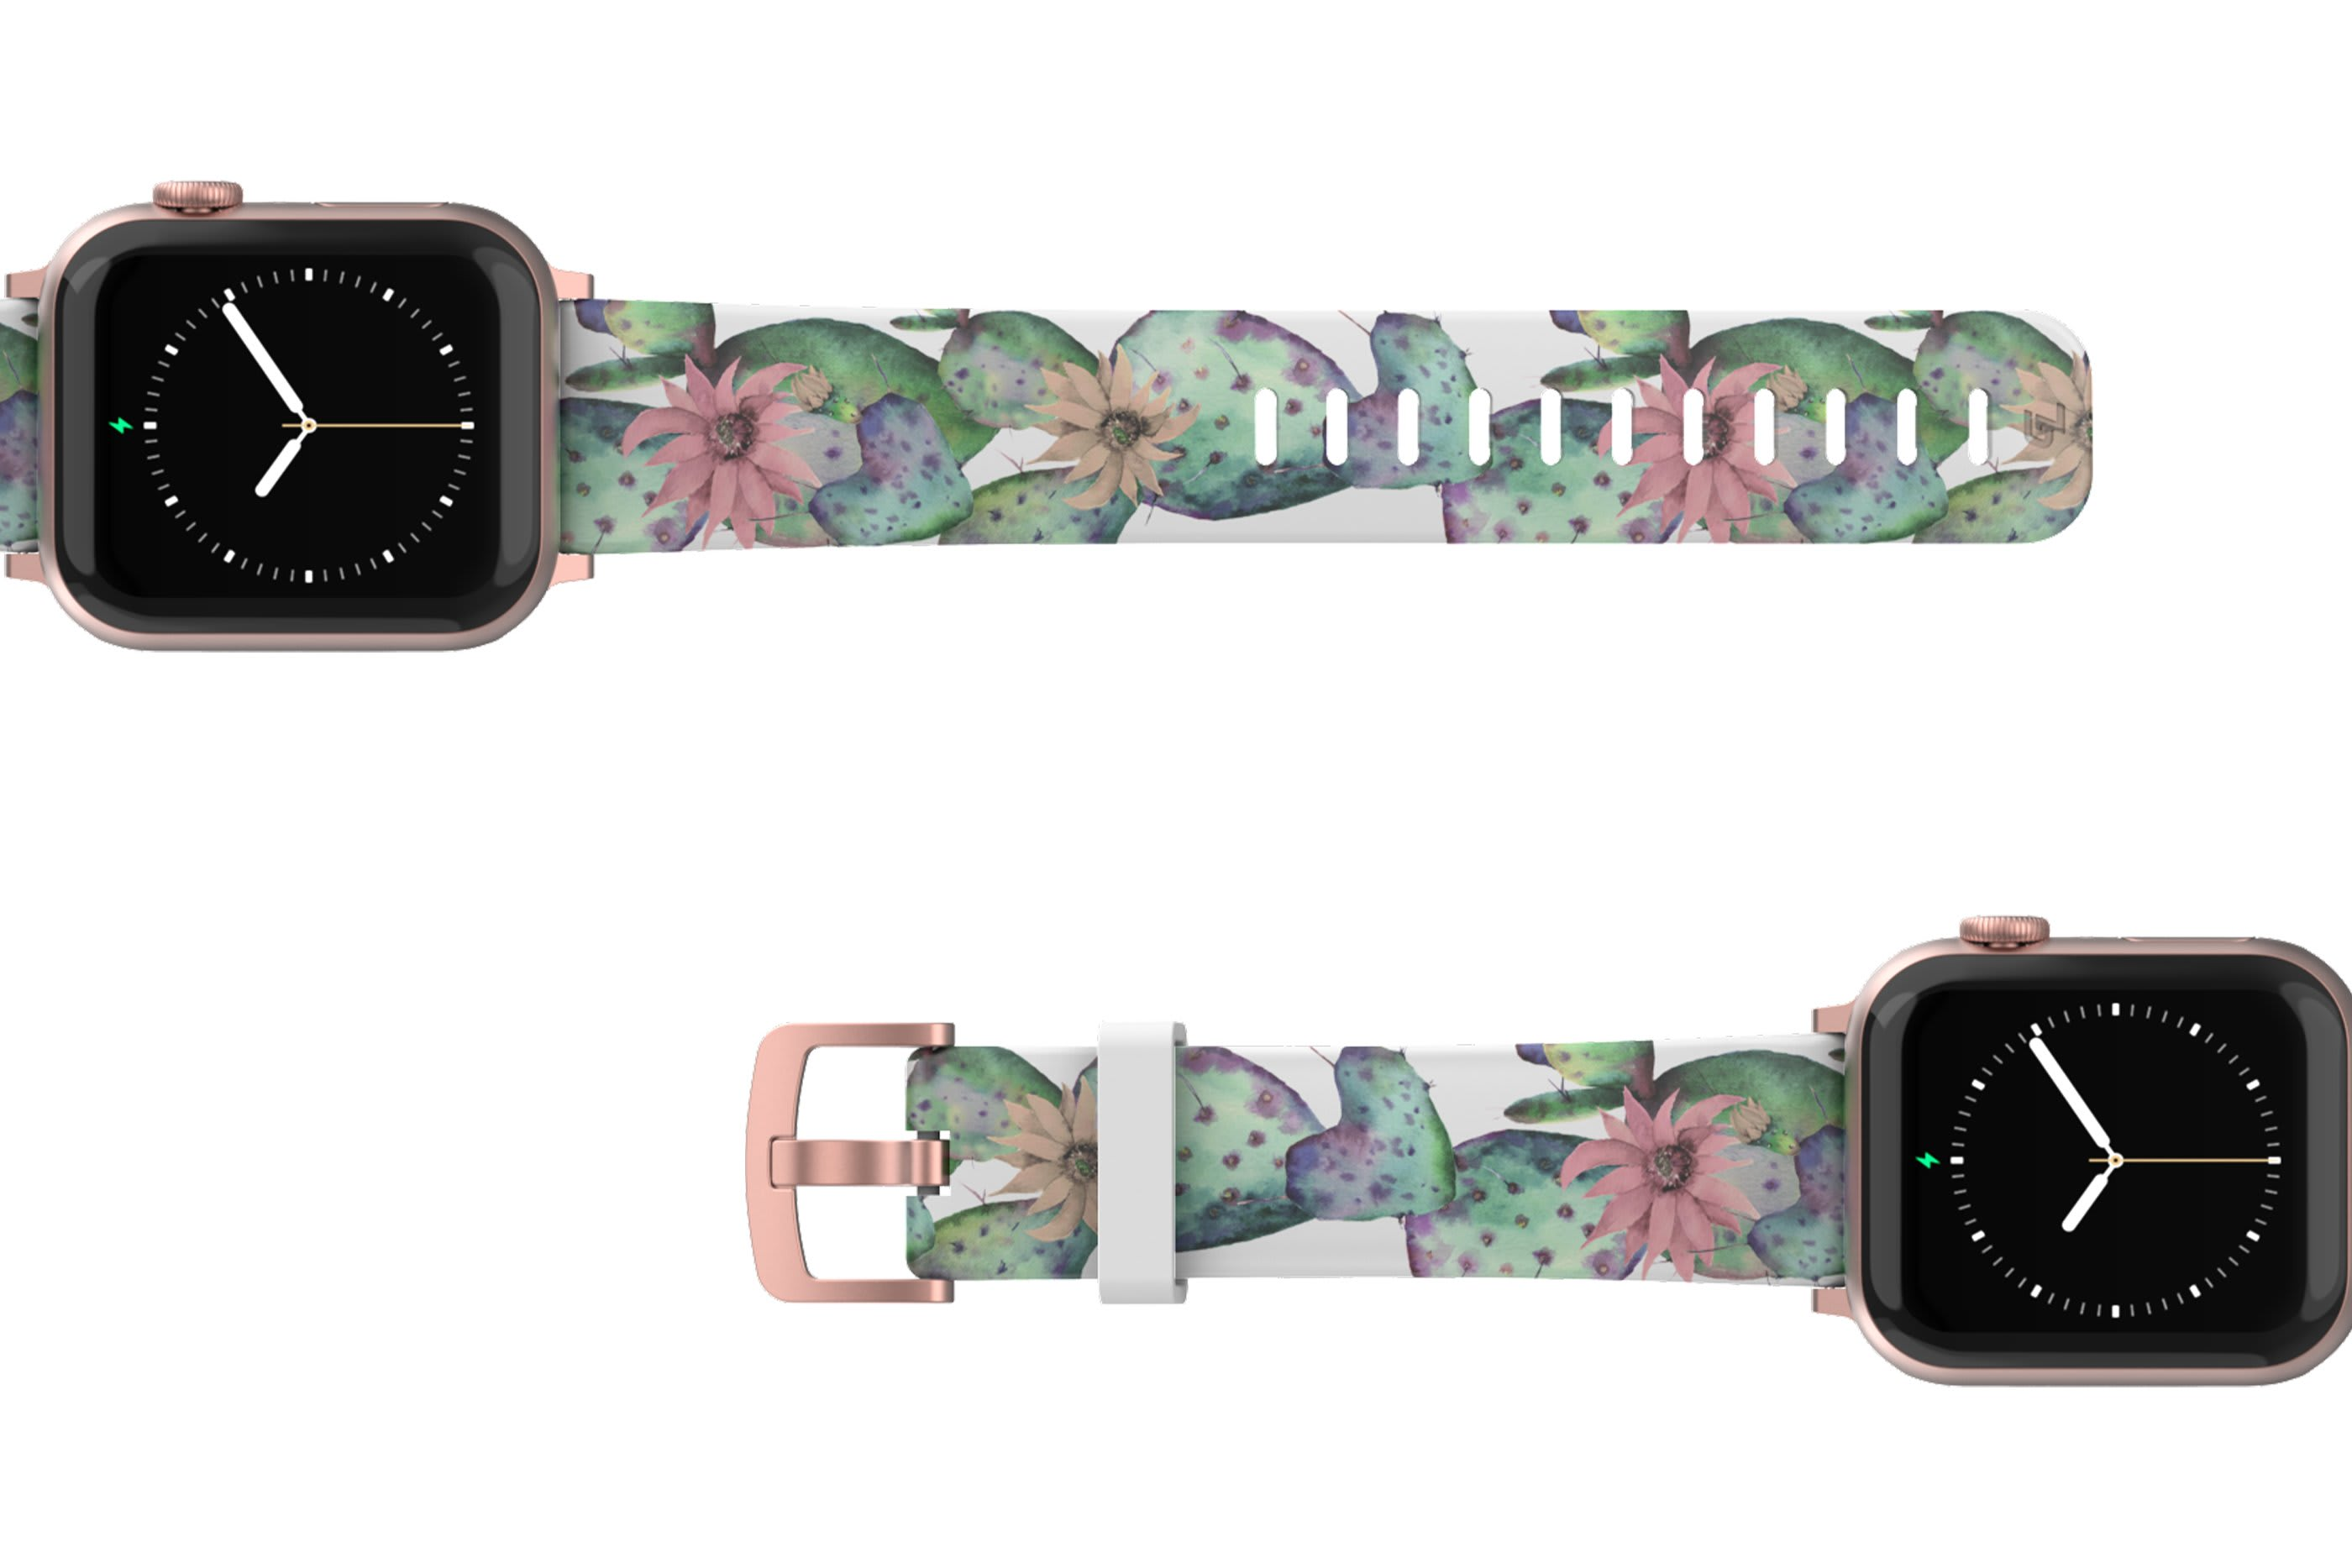 Cactus Bloom Apple Watch Band with rose gold hardware viewed top down